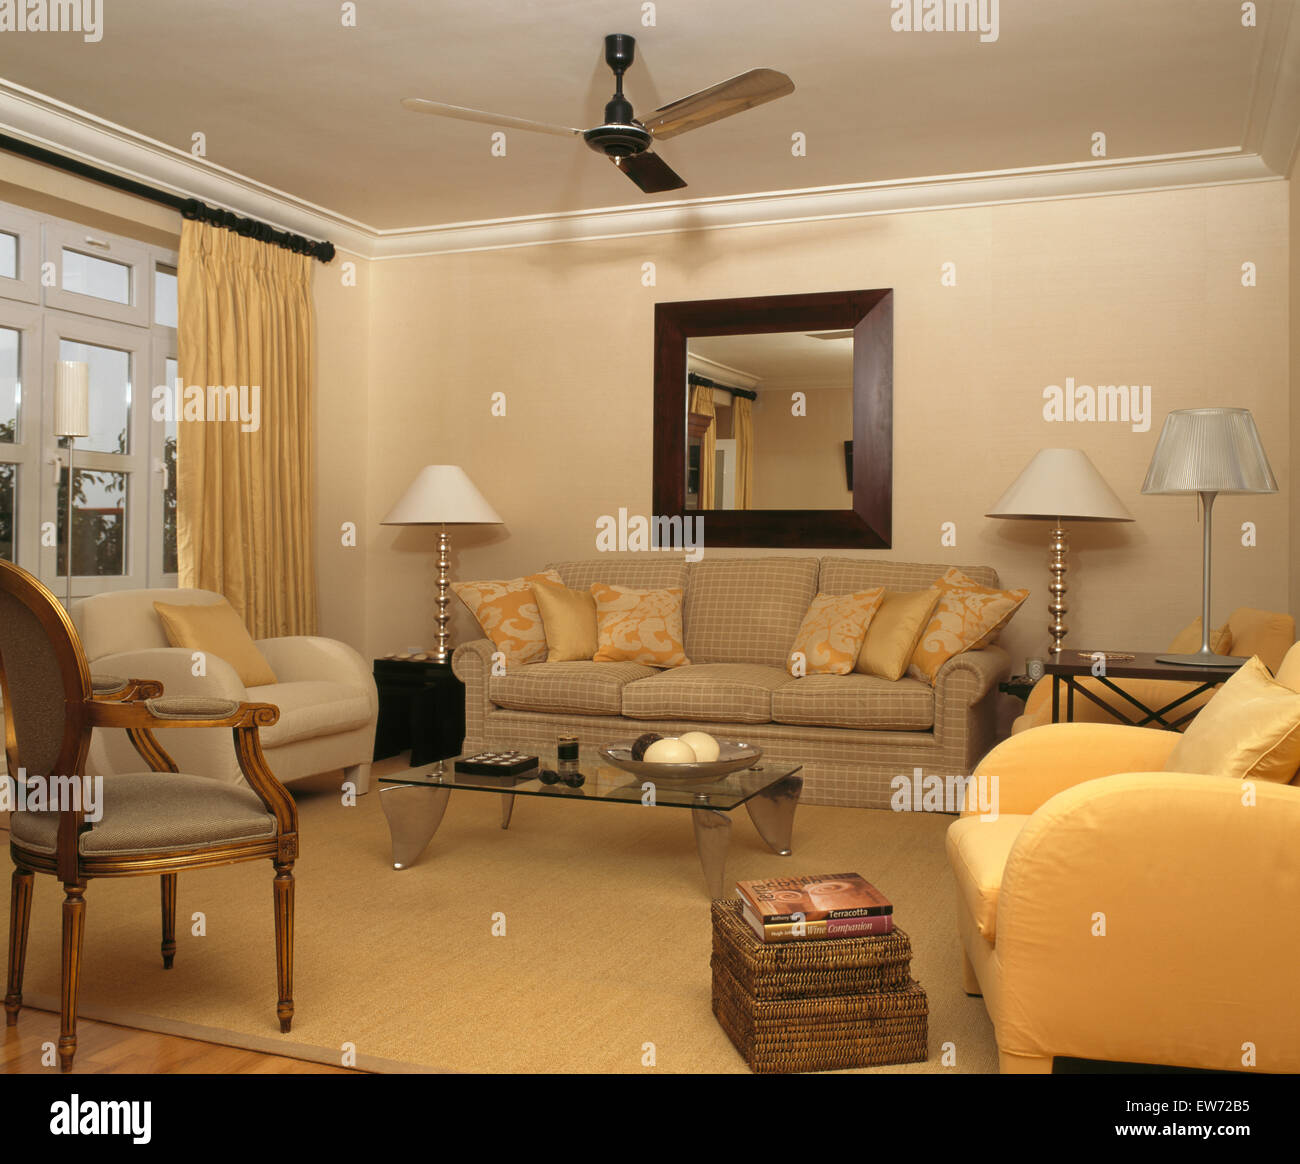 What Is Sofa In Spanish Yellow And Cream Armchairs And Sofa In Spanish Apartment Living